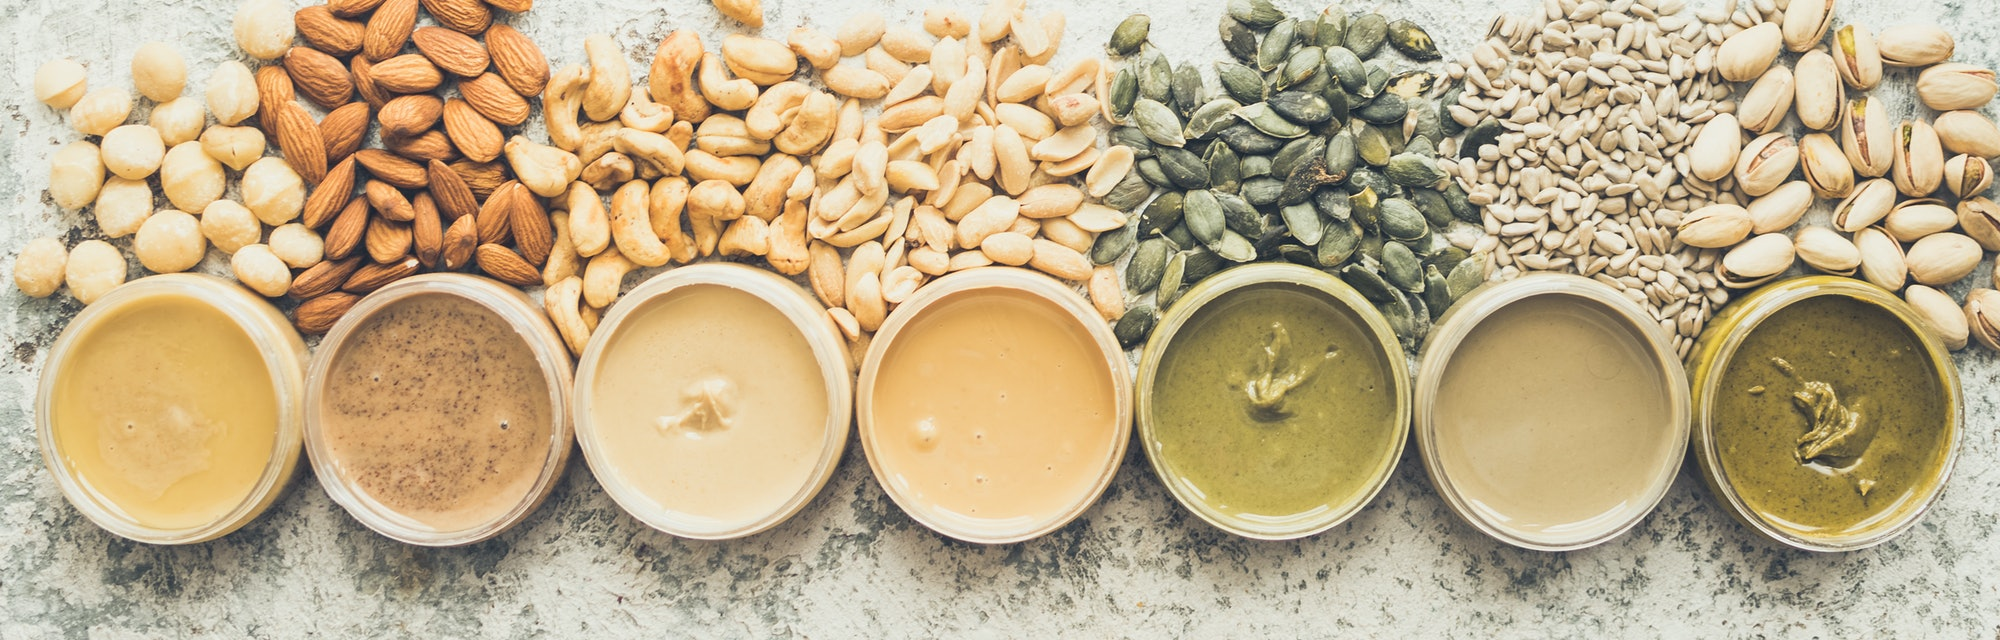 Nuts and seeds butter in jars with ingredients. Homemade raw organic peanut, almond, hazlenut, cashe...